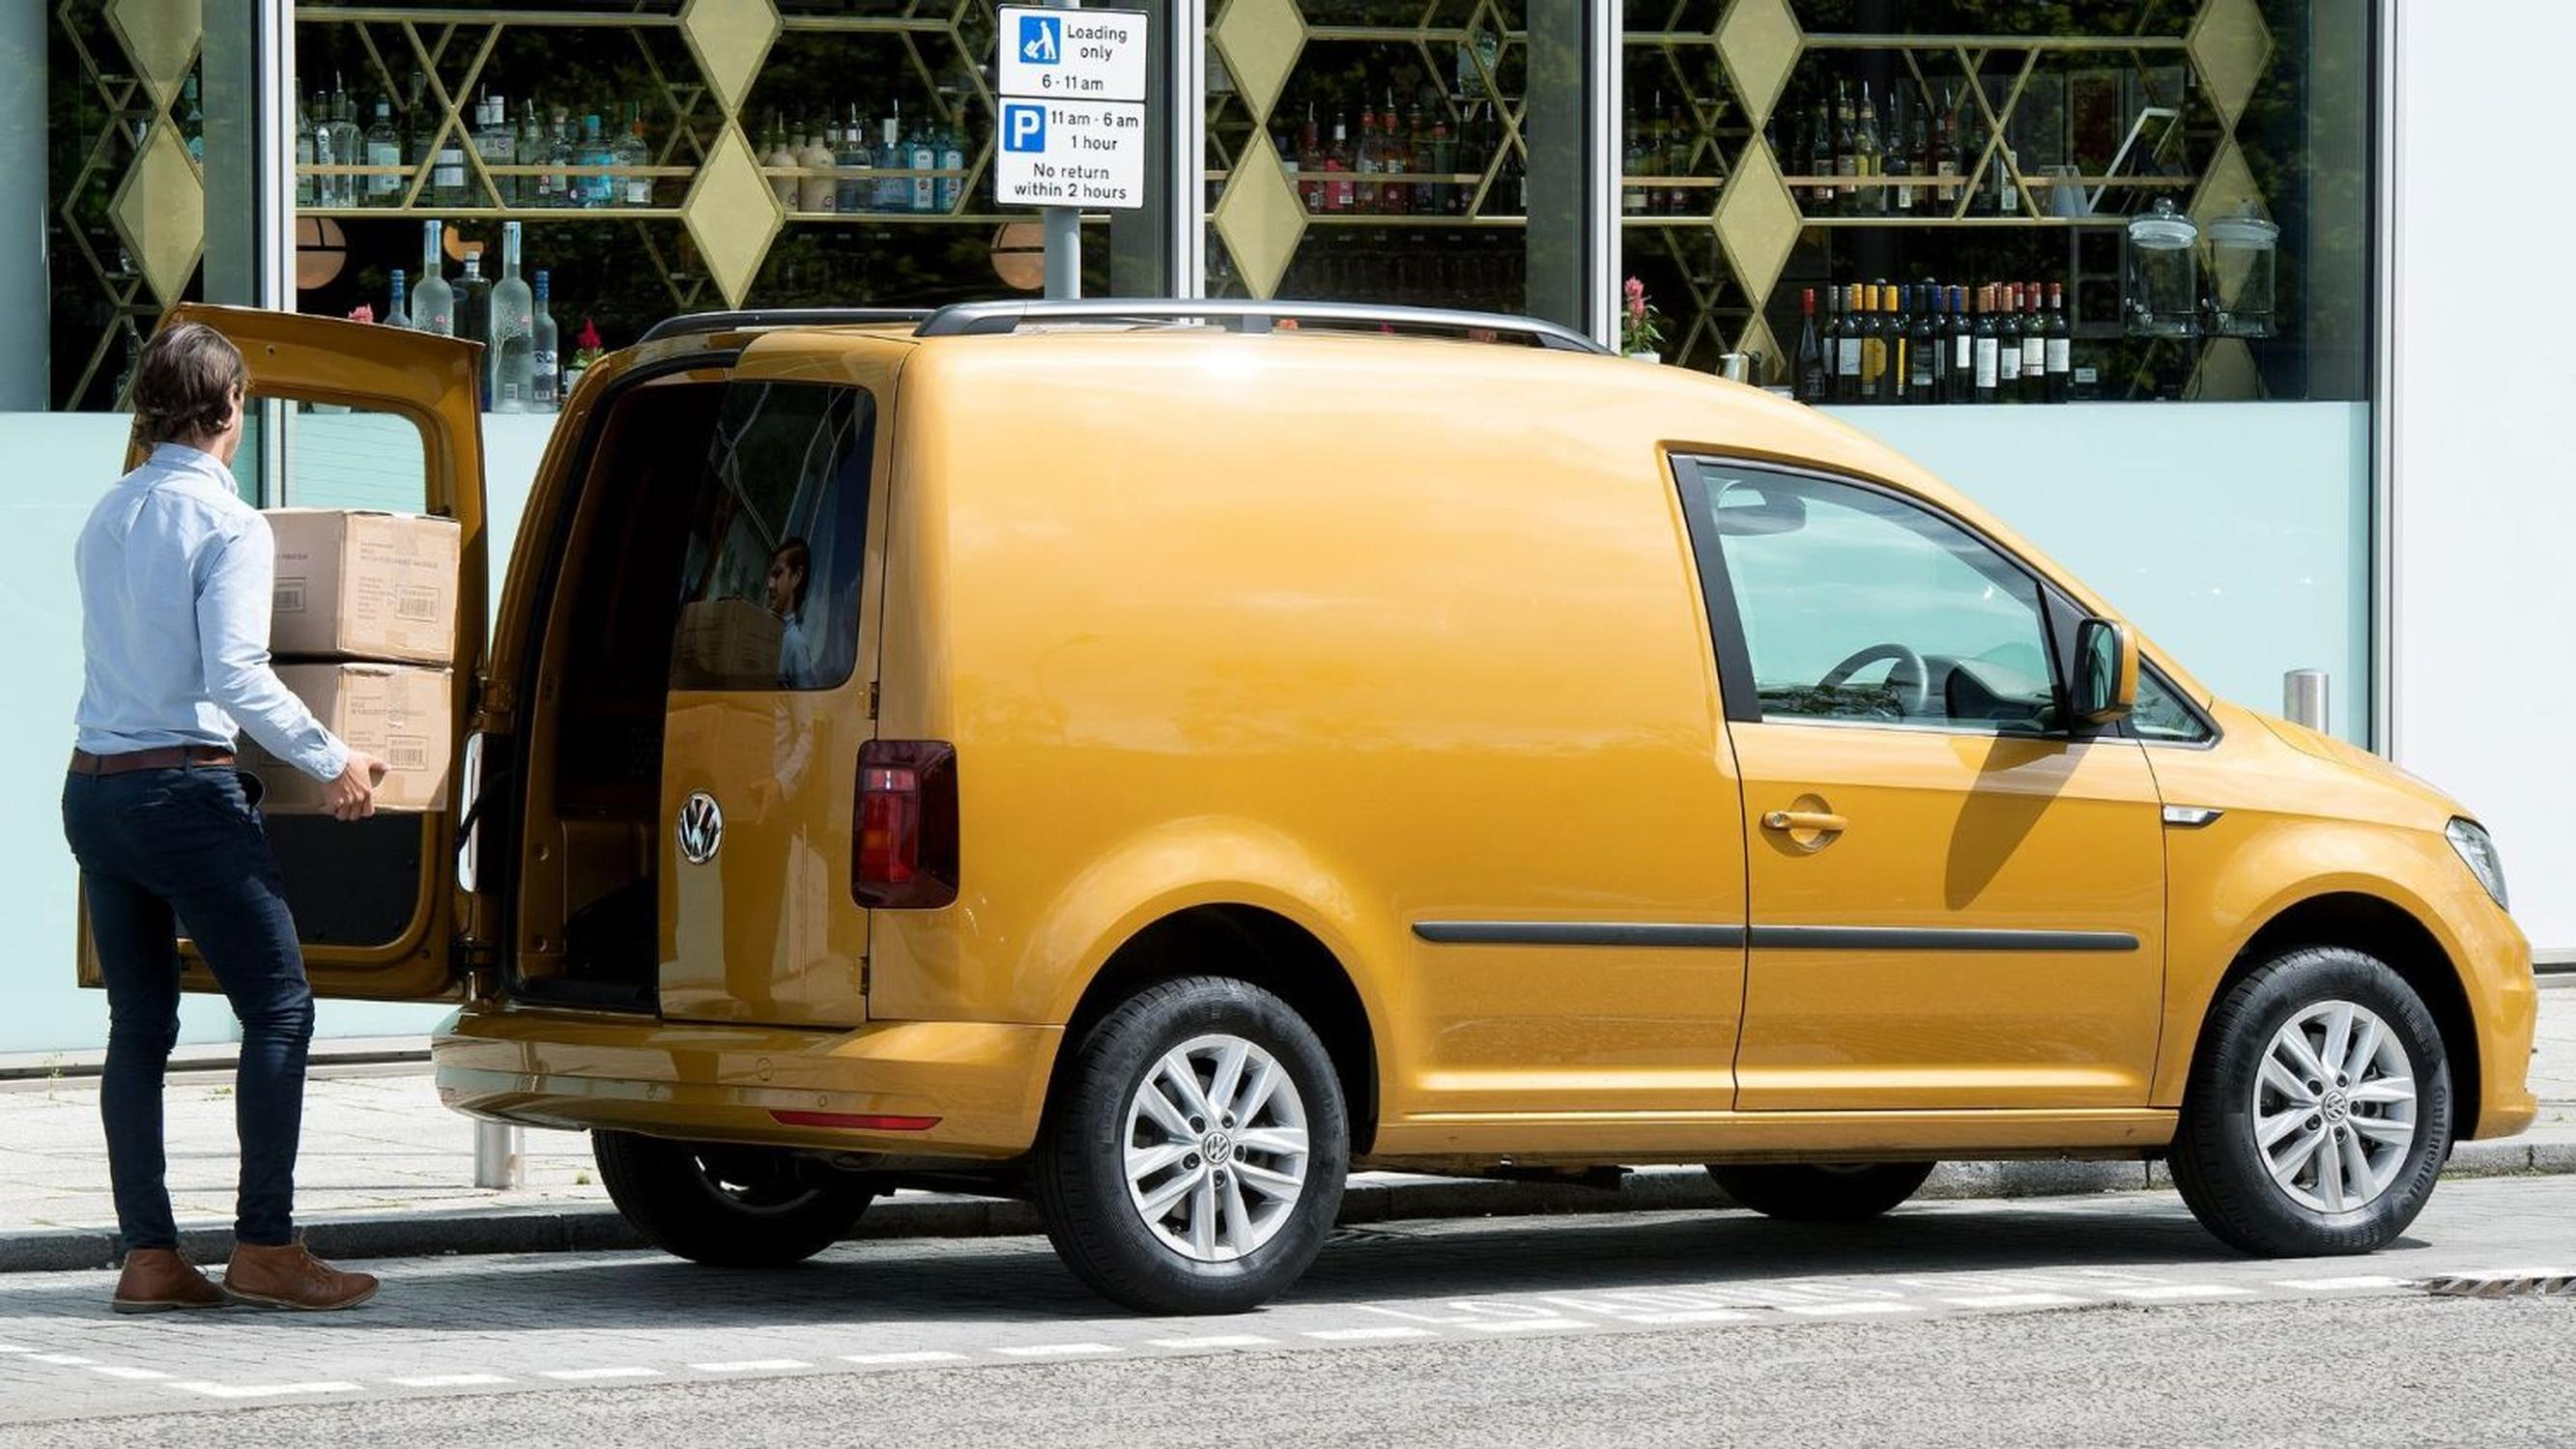 Many van drivers do not understand loading rules, VW finds